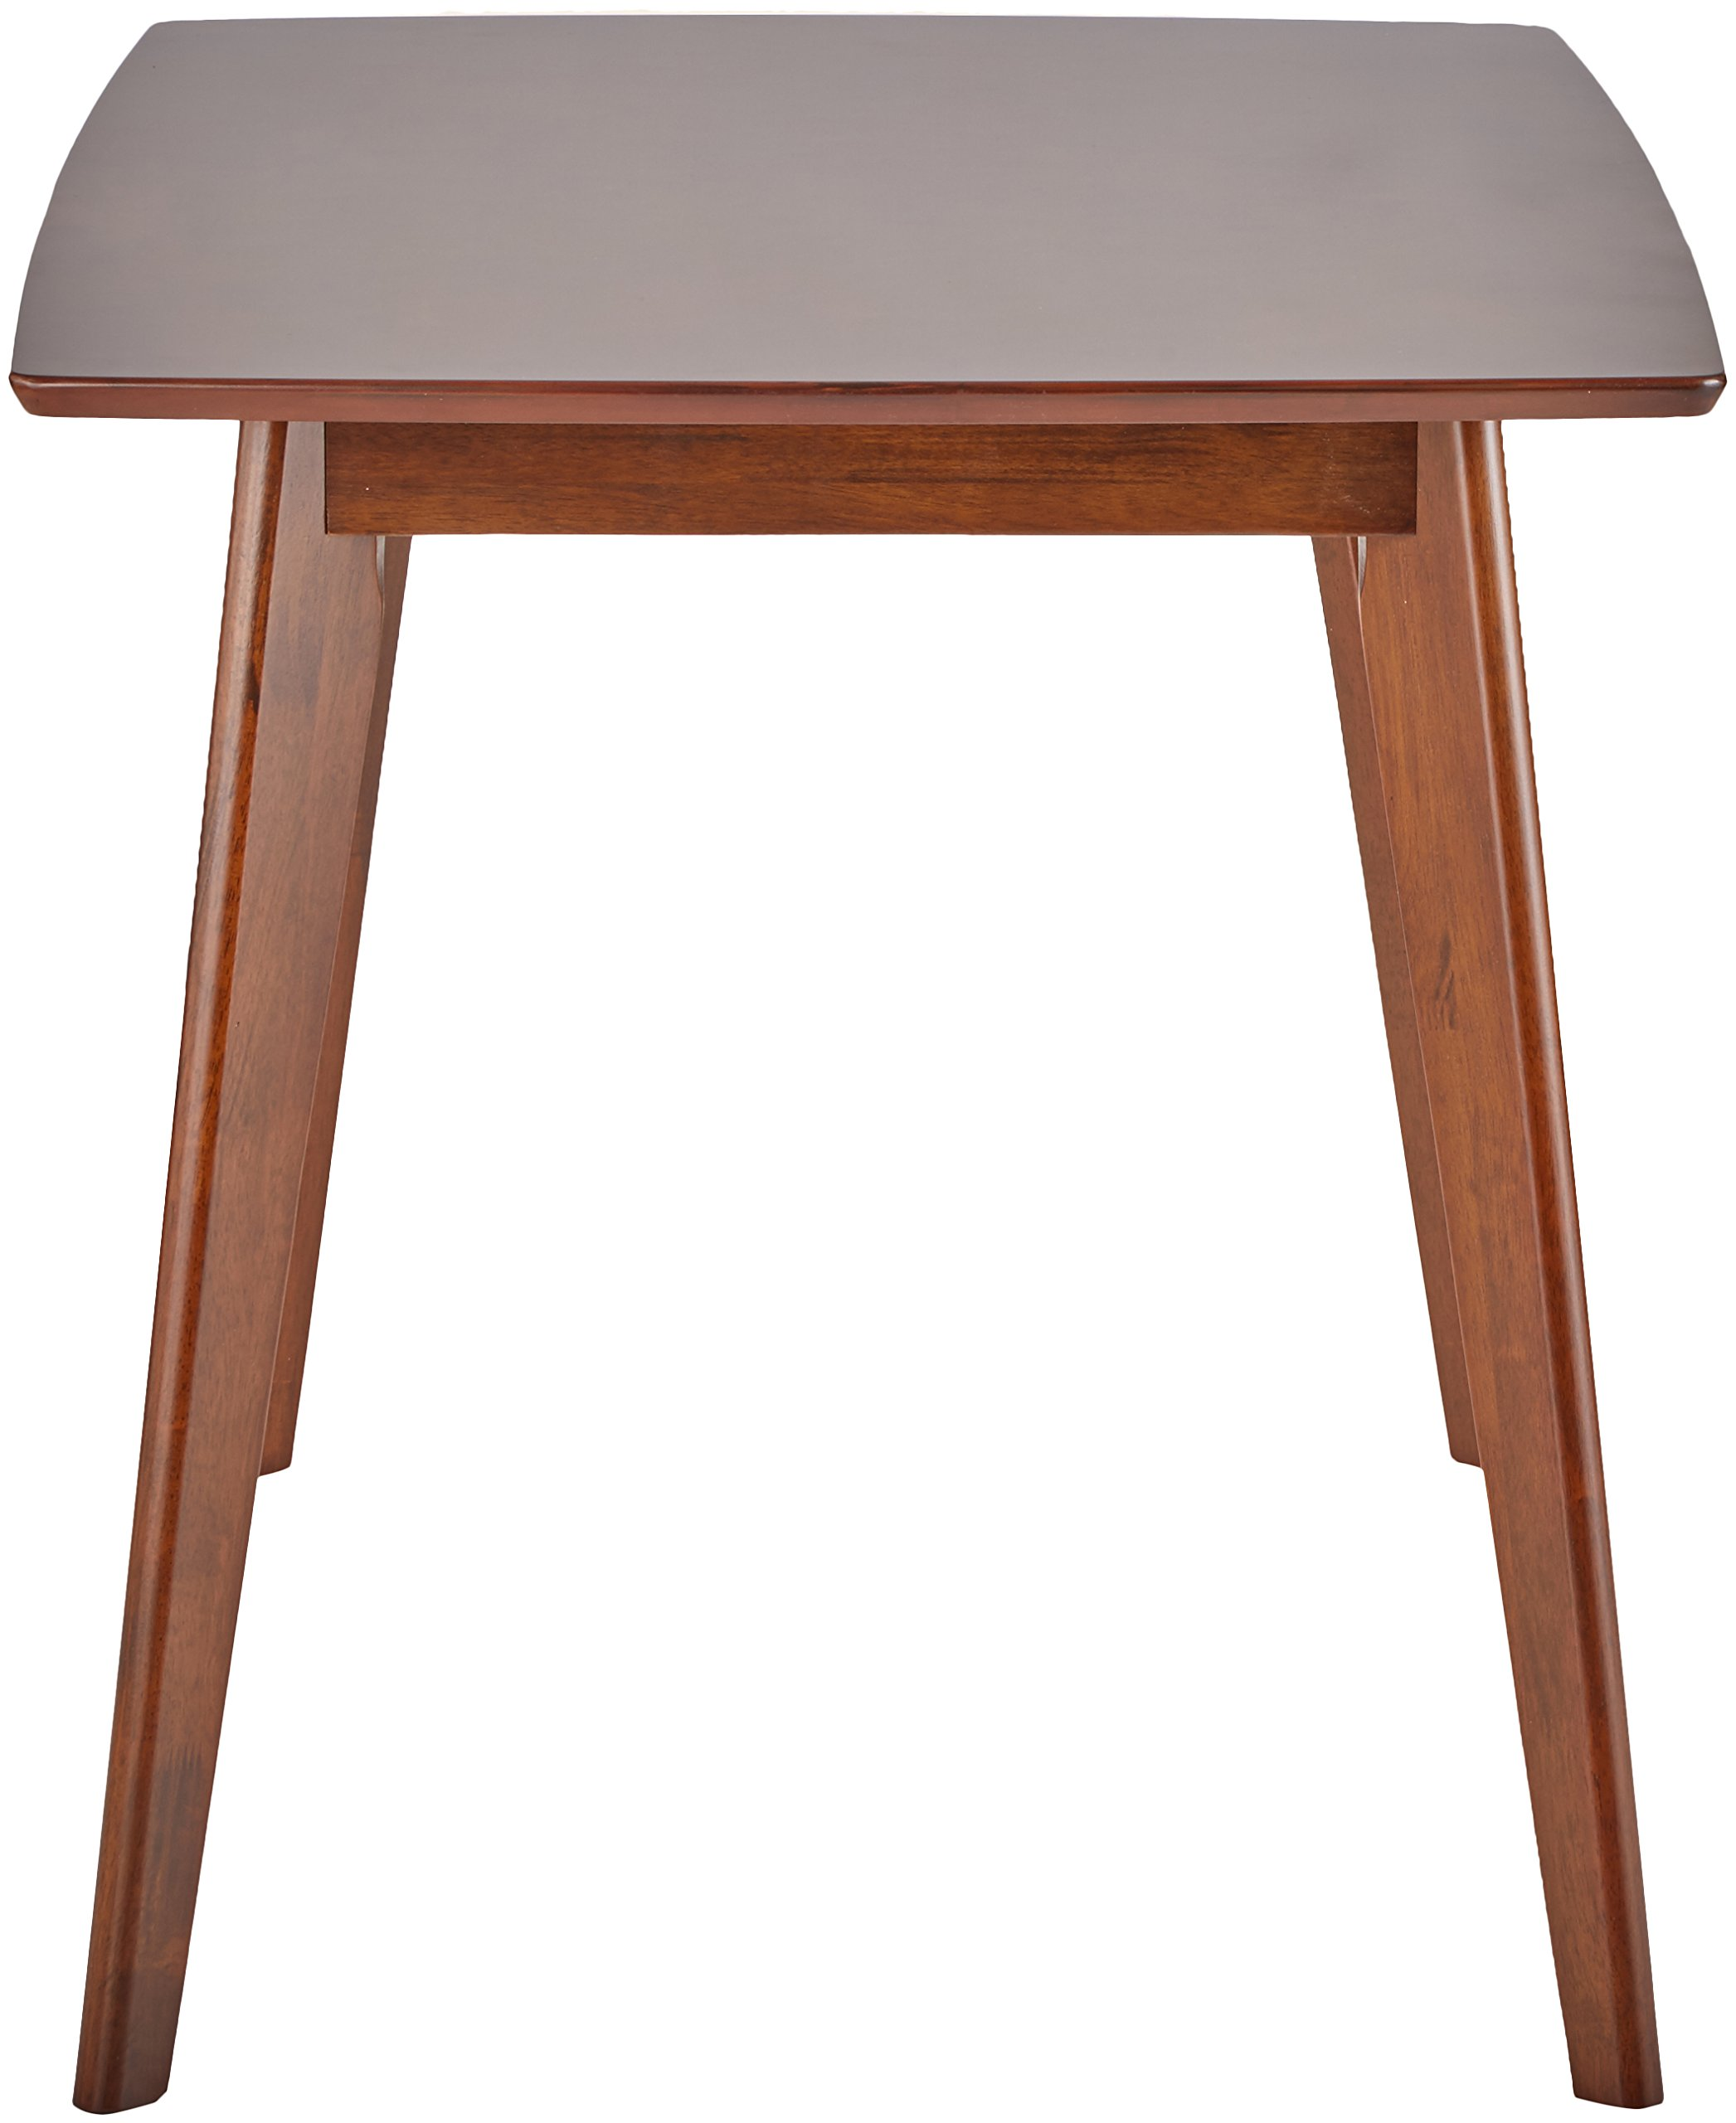 Coaster 103061 Home Furnishings Dining Table, Chestnut by Coaster Home Furnishings (Image #3)